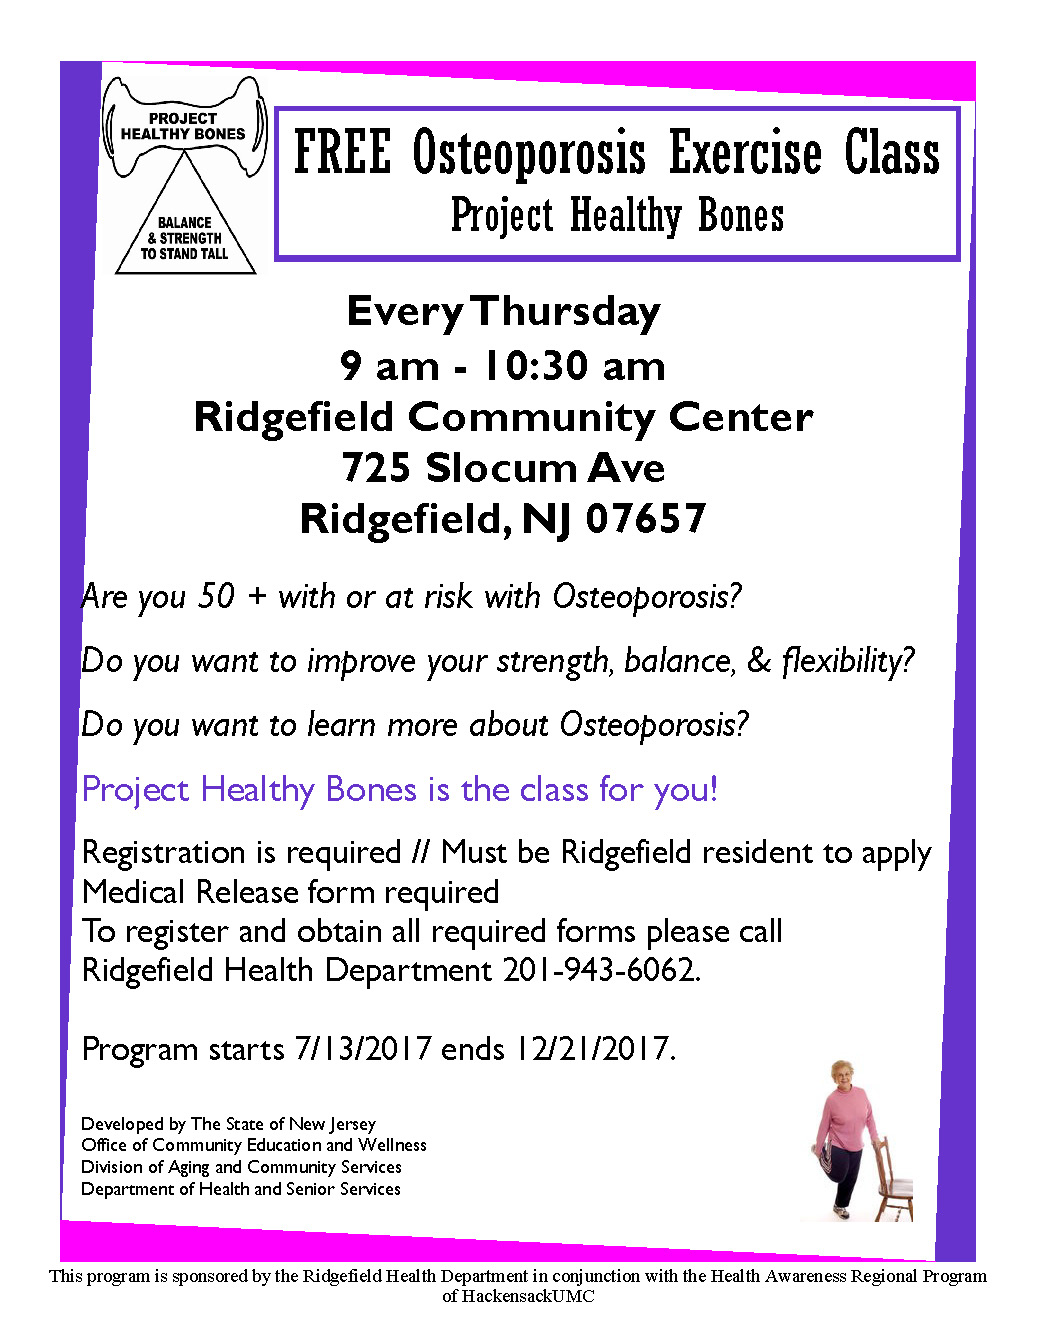 Nj familycare application nj - Project Healthy Bones